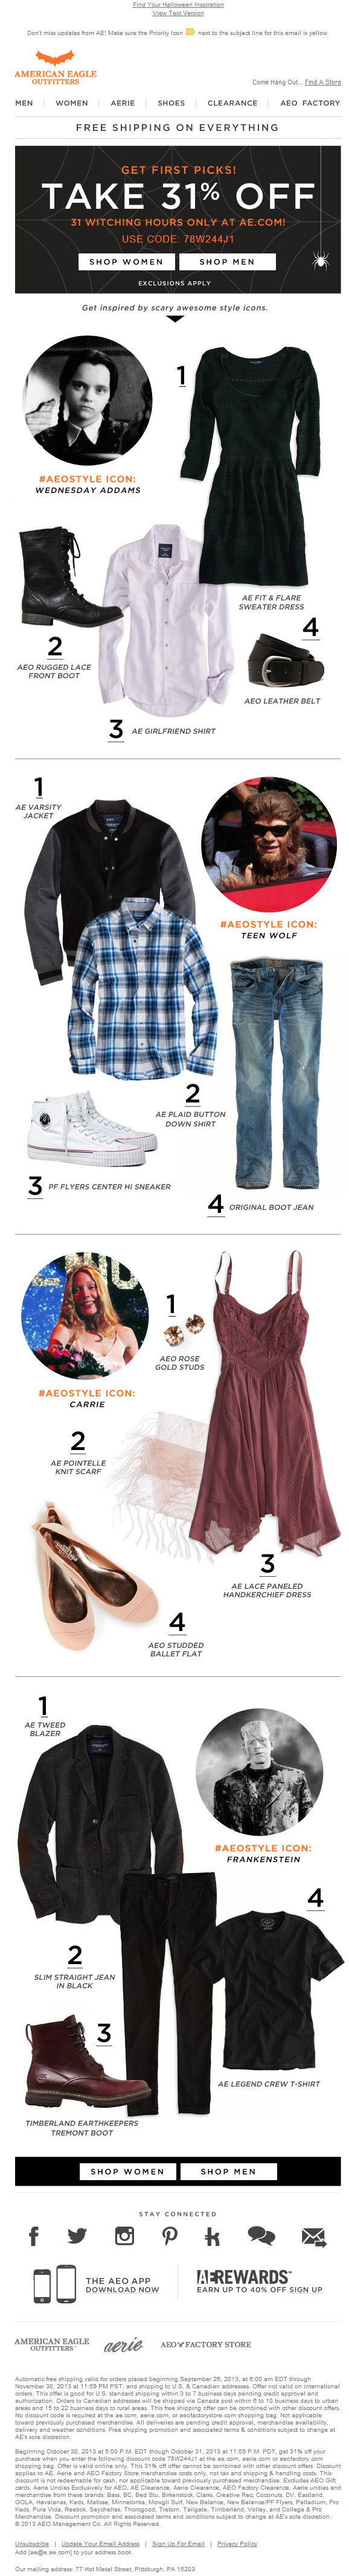 Sent: 10/30/13 SL: 'No Tricks, All Treat: 31% Off, 31 Hours Only' Fun example from American Eagle of a Halloween style guide email!